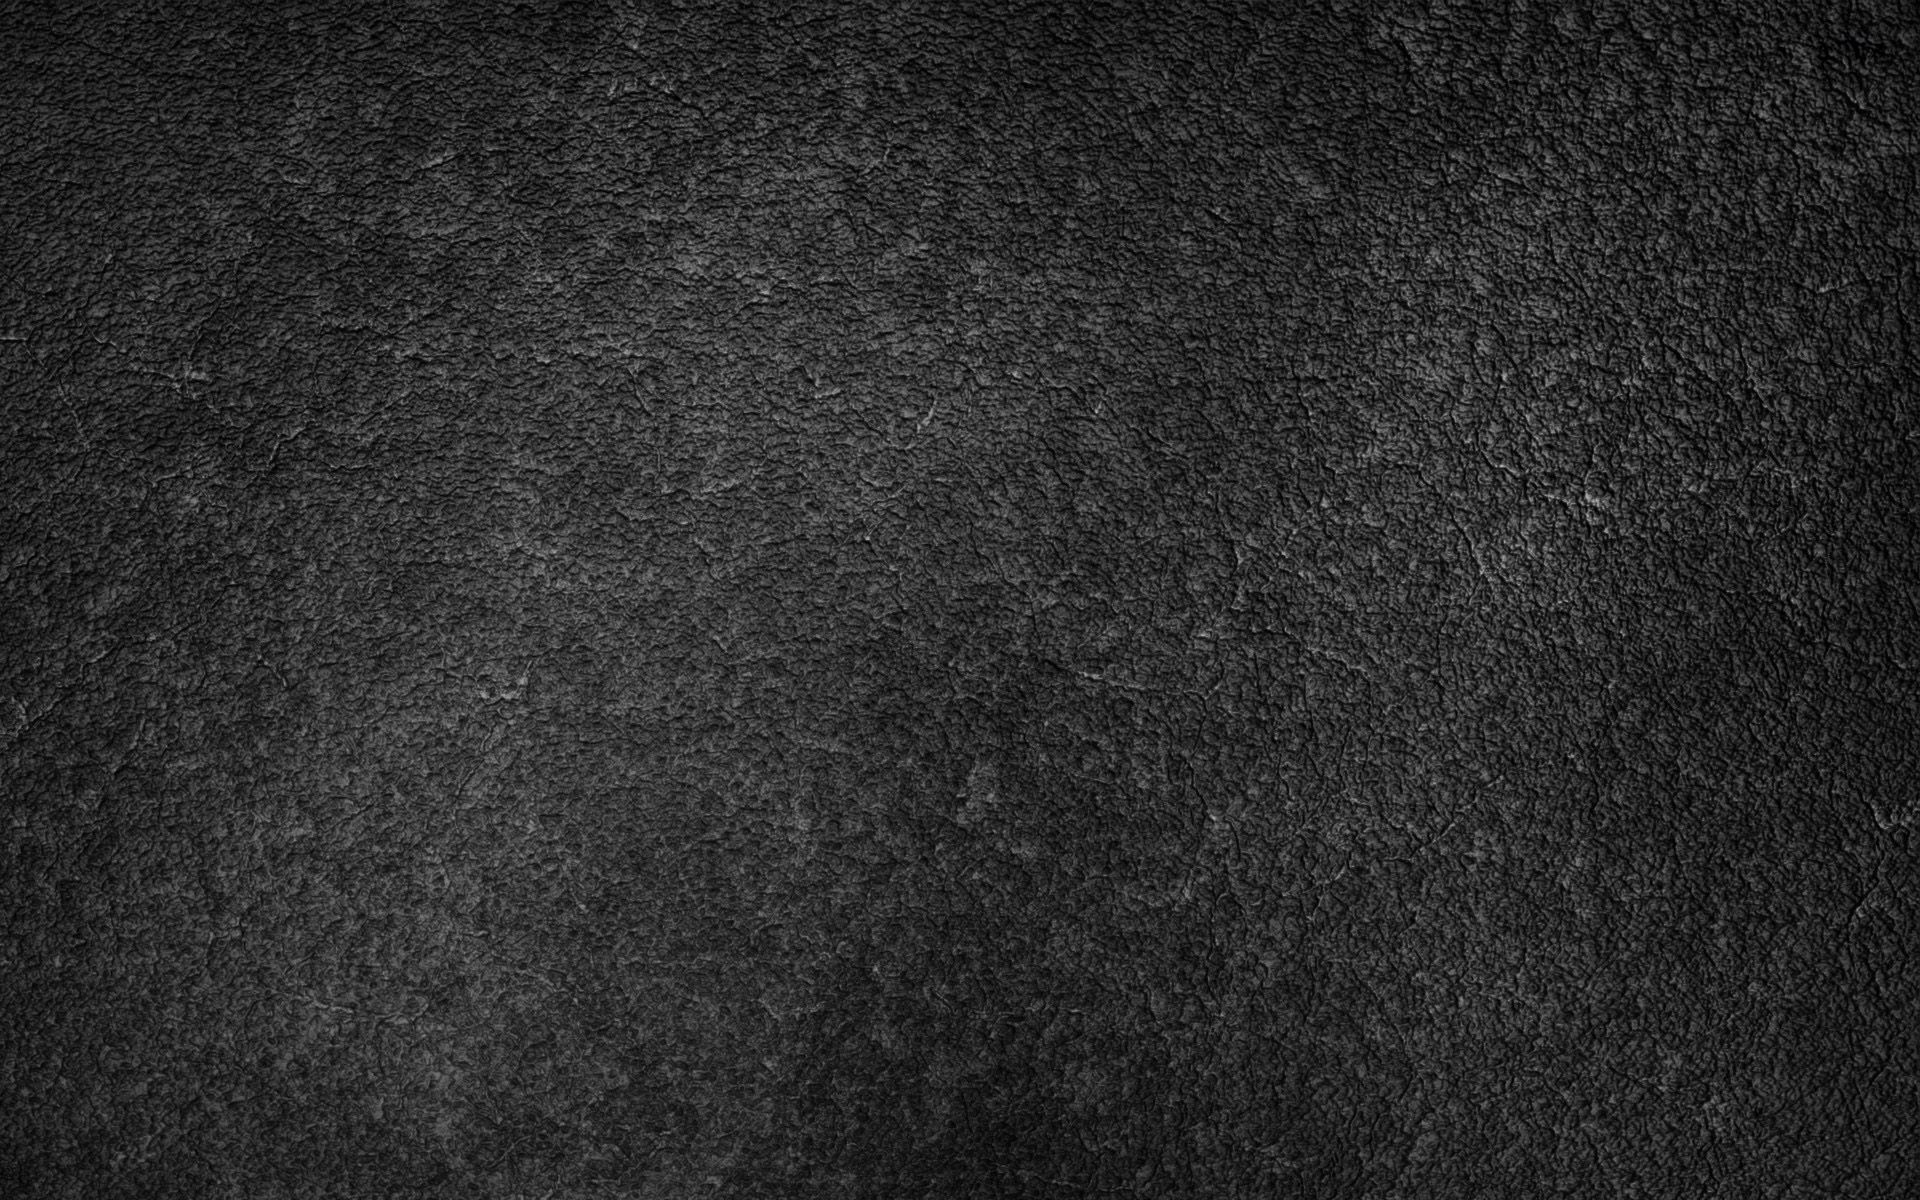 dark concrete floor texture backgrounds texture